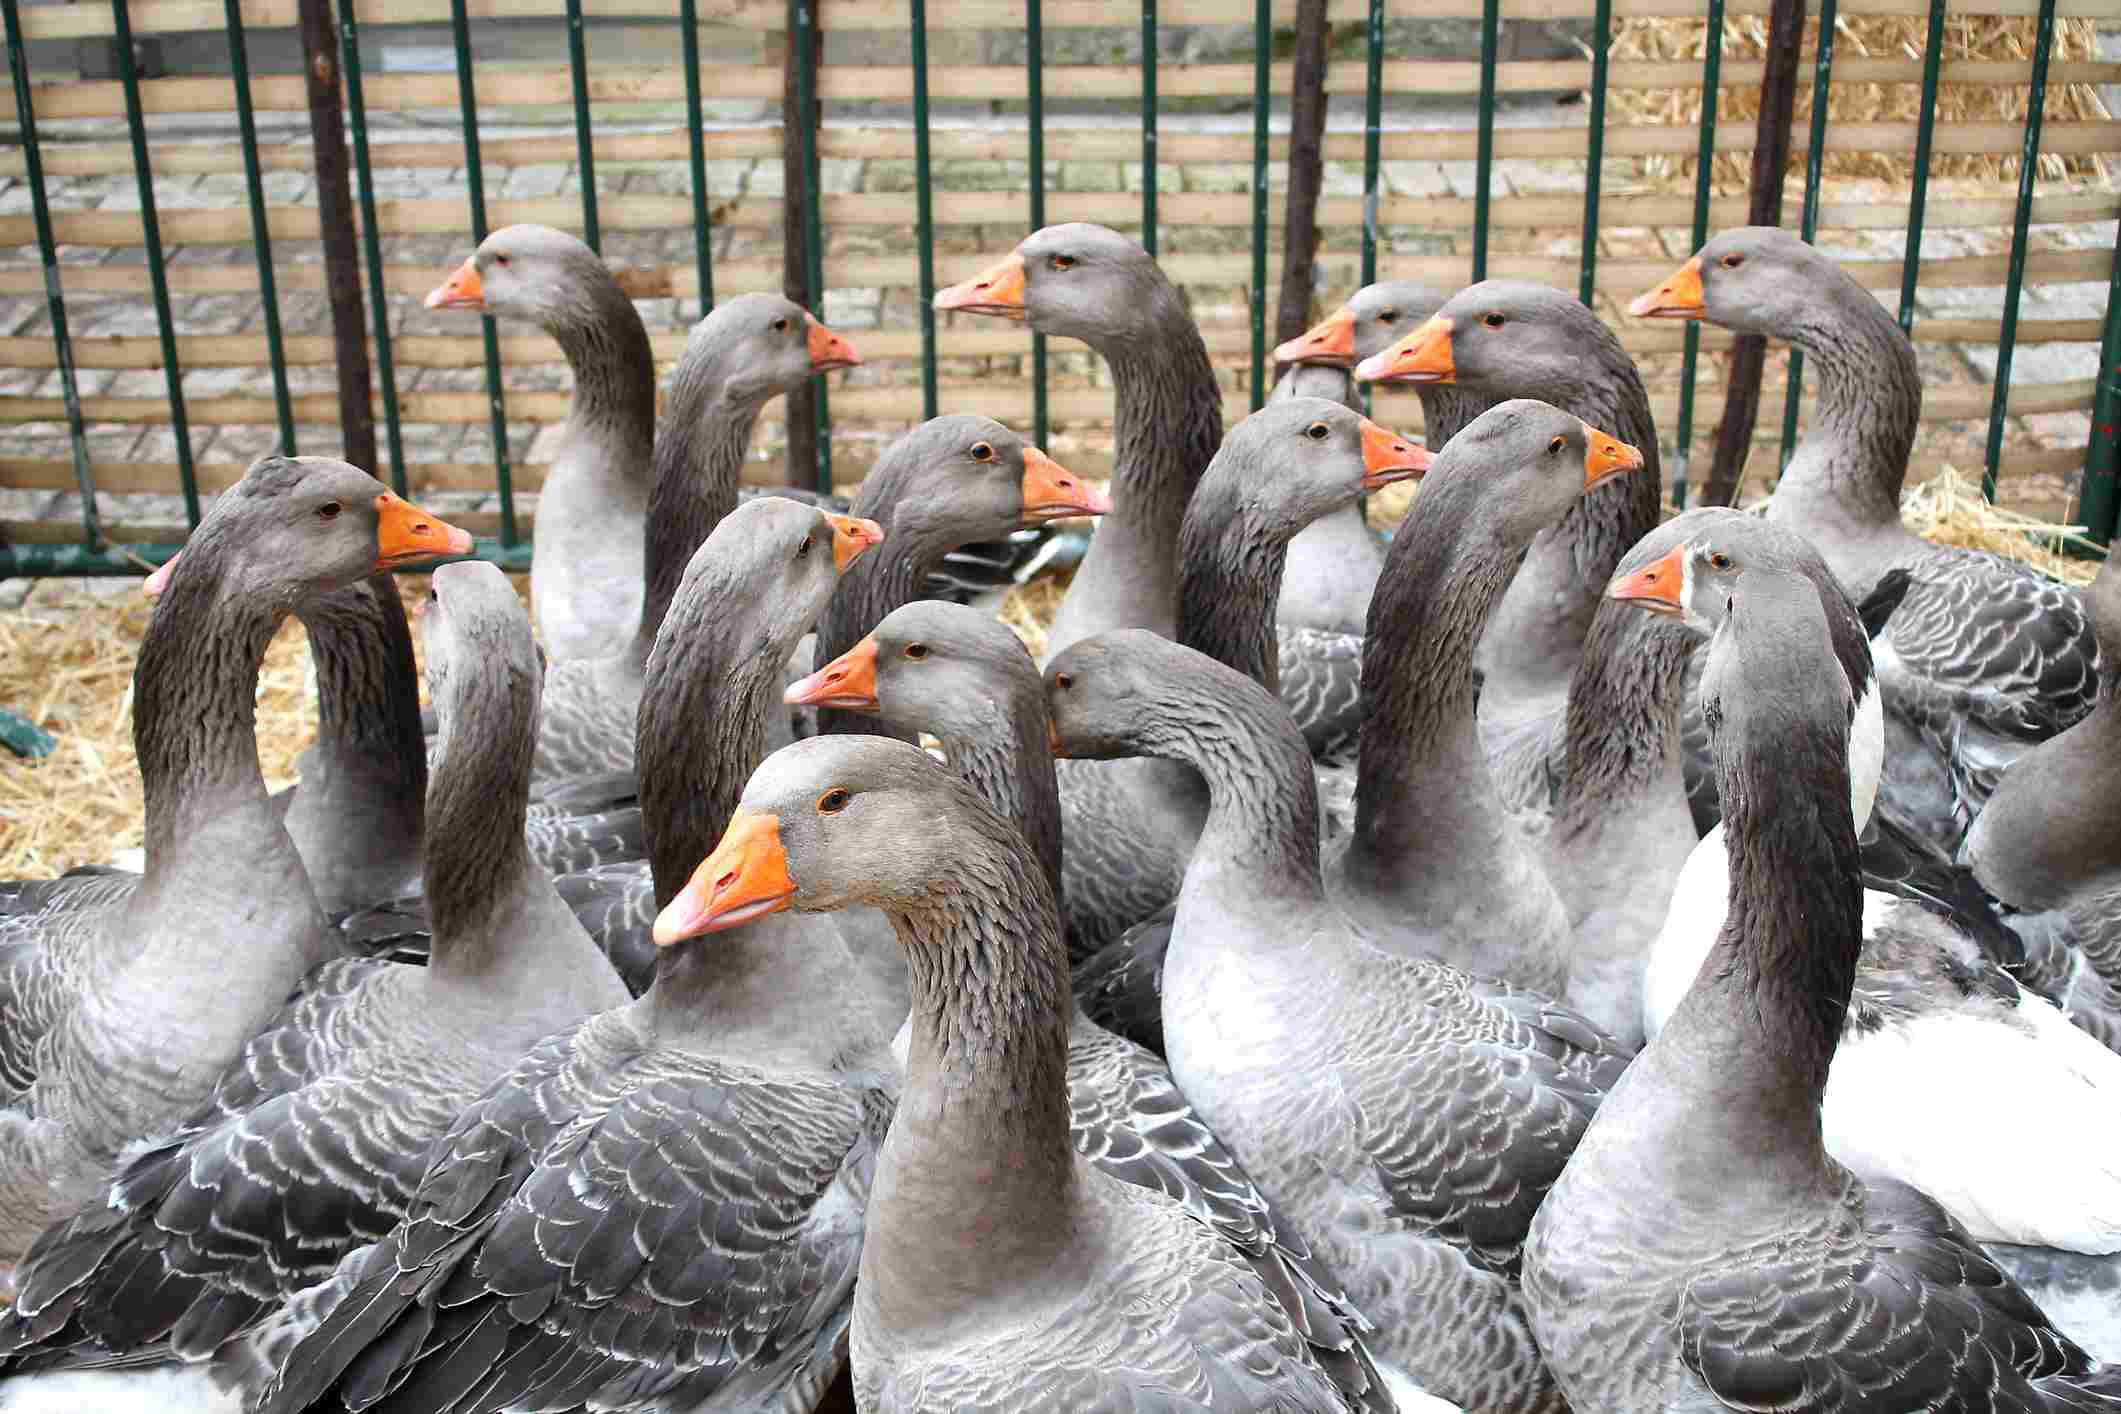 Geese for sale at foie gras market